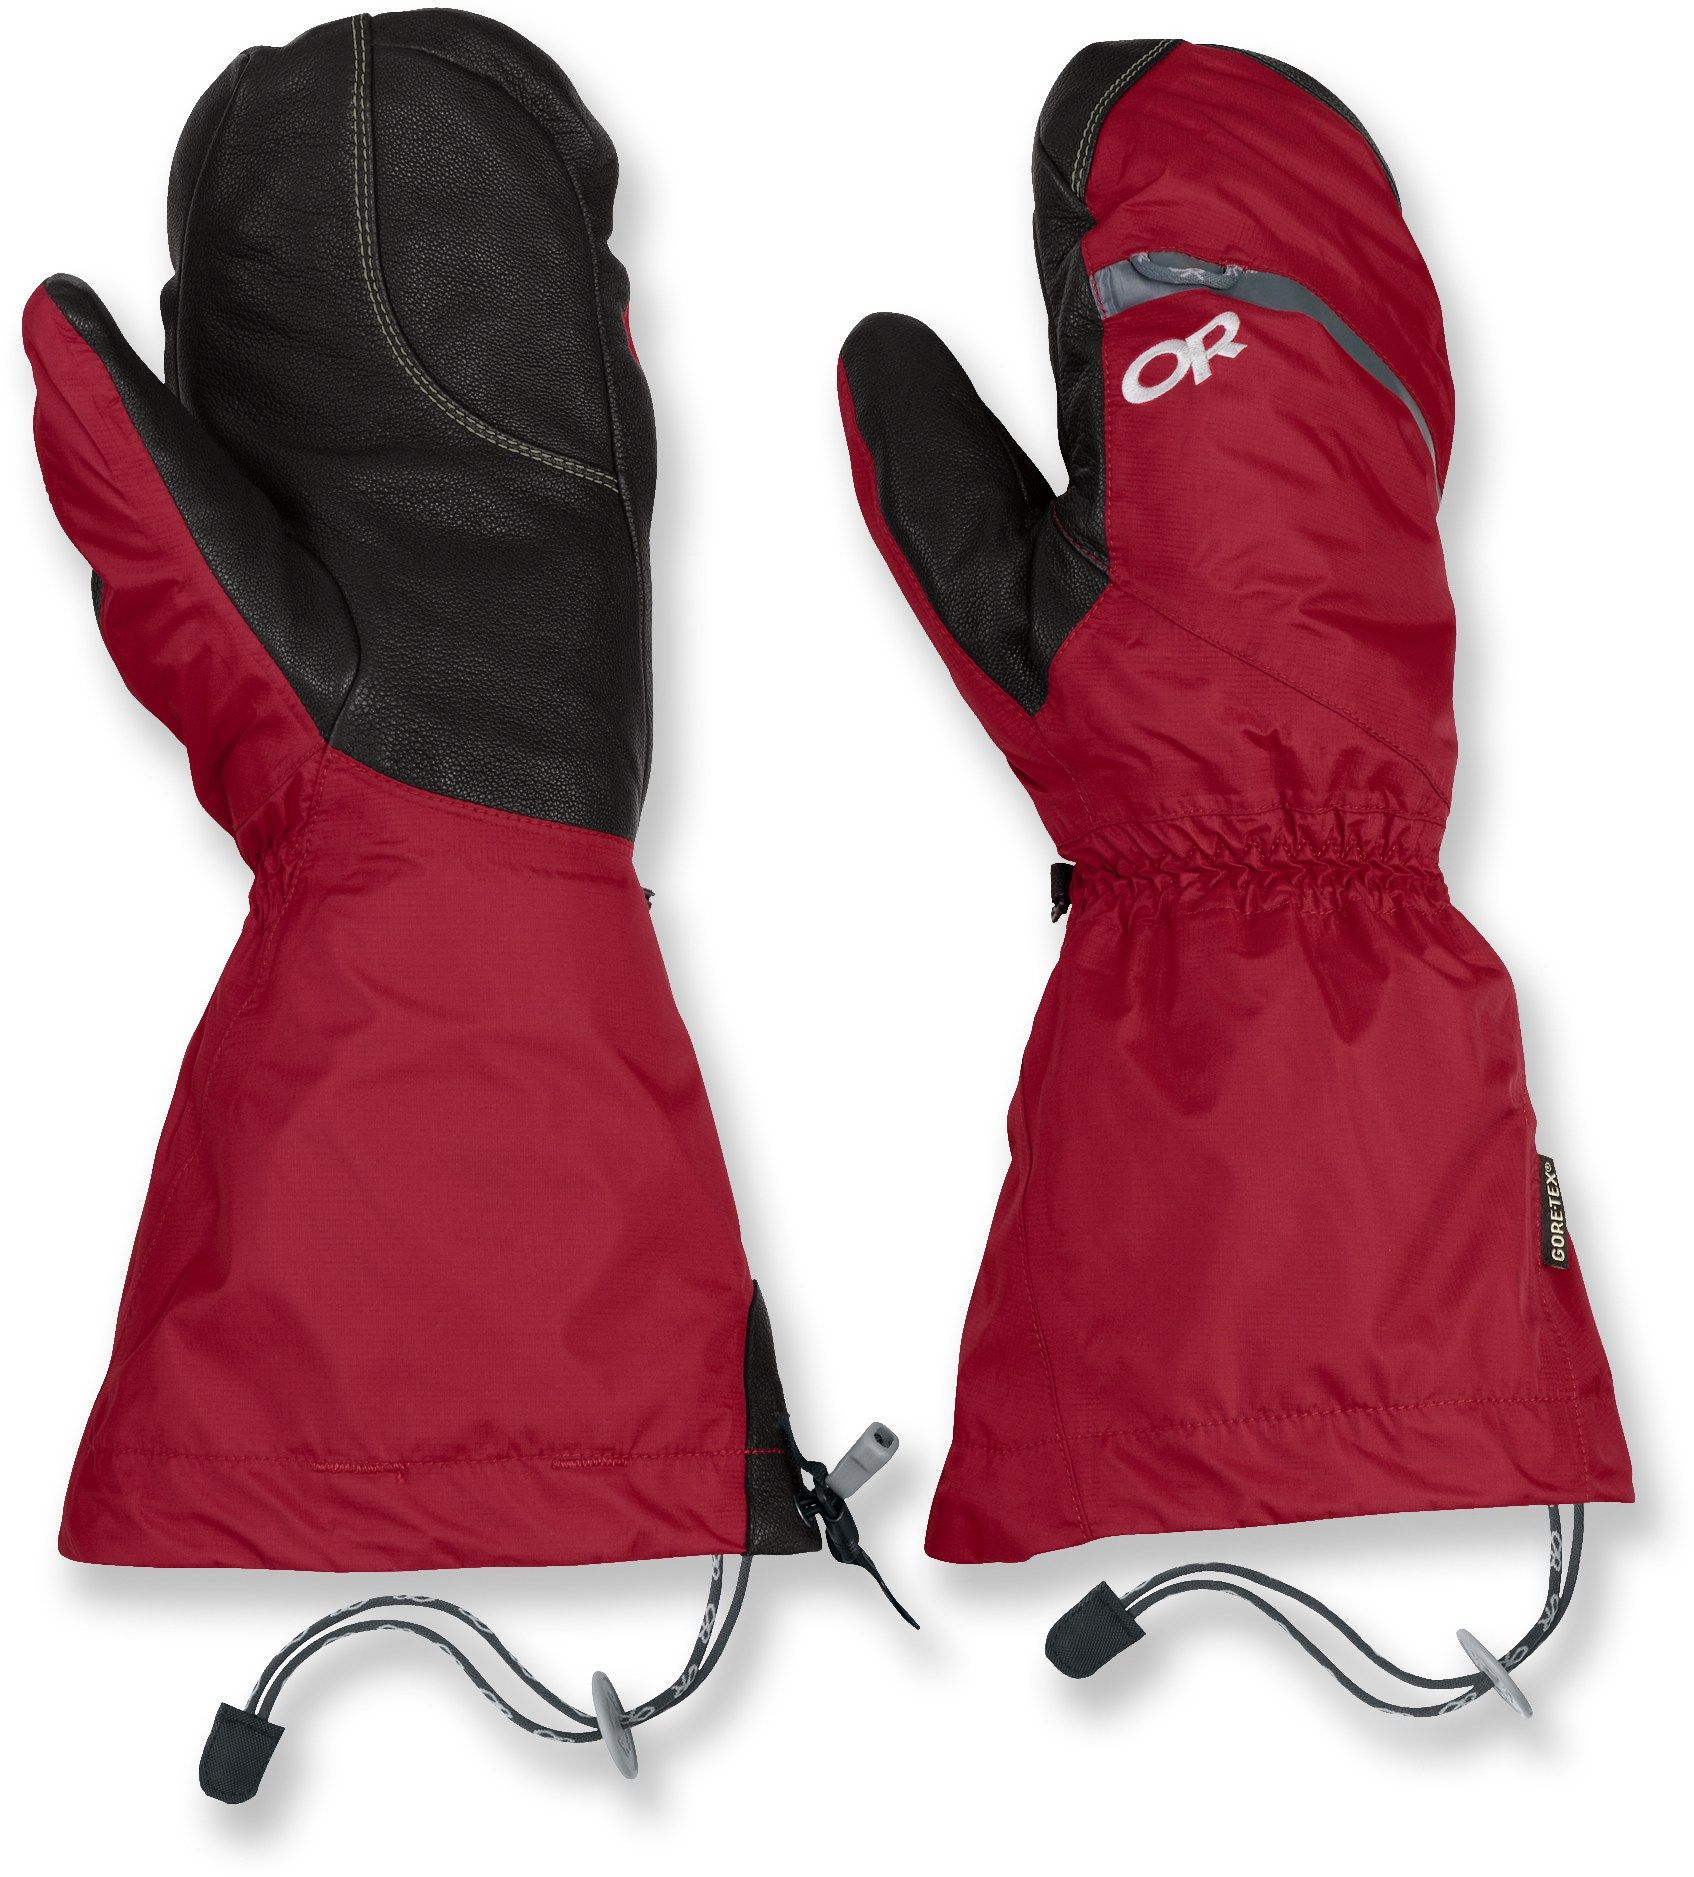 Outdoor research alti mittens chili xl mittens trekking gear and